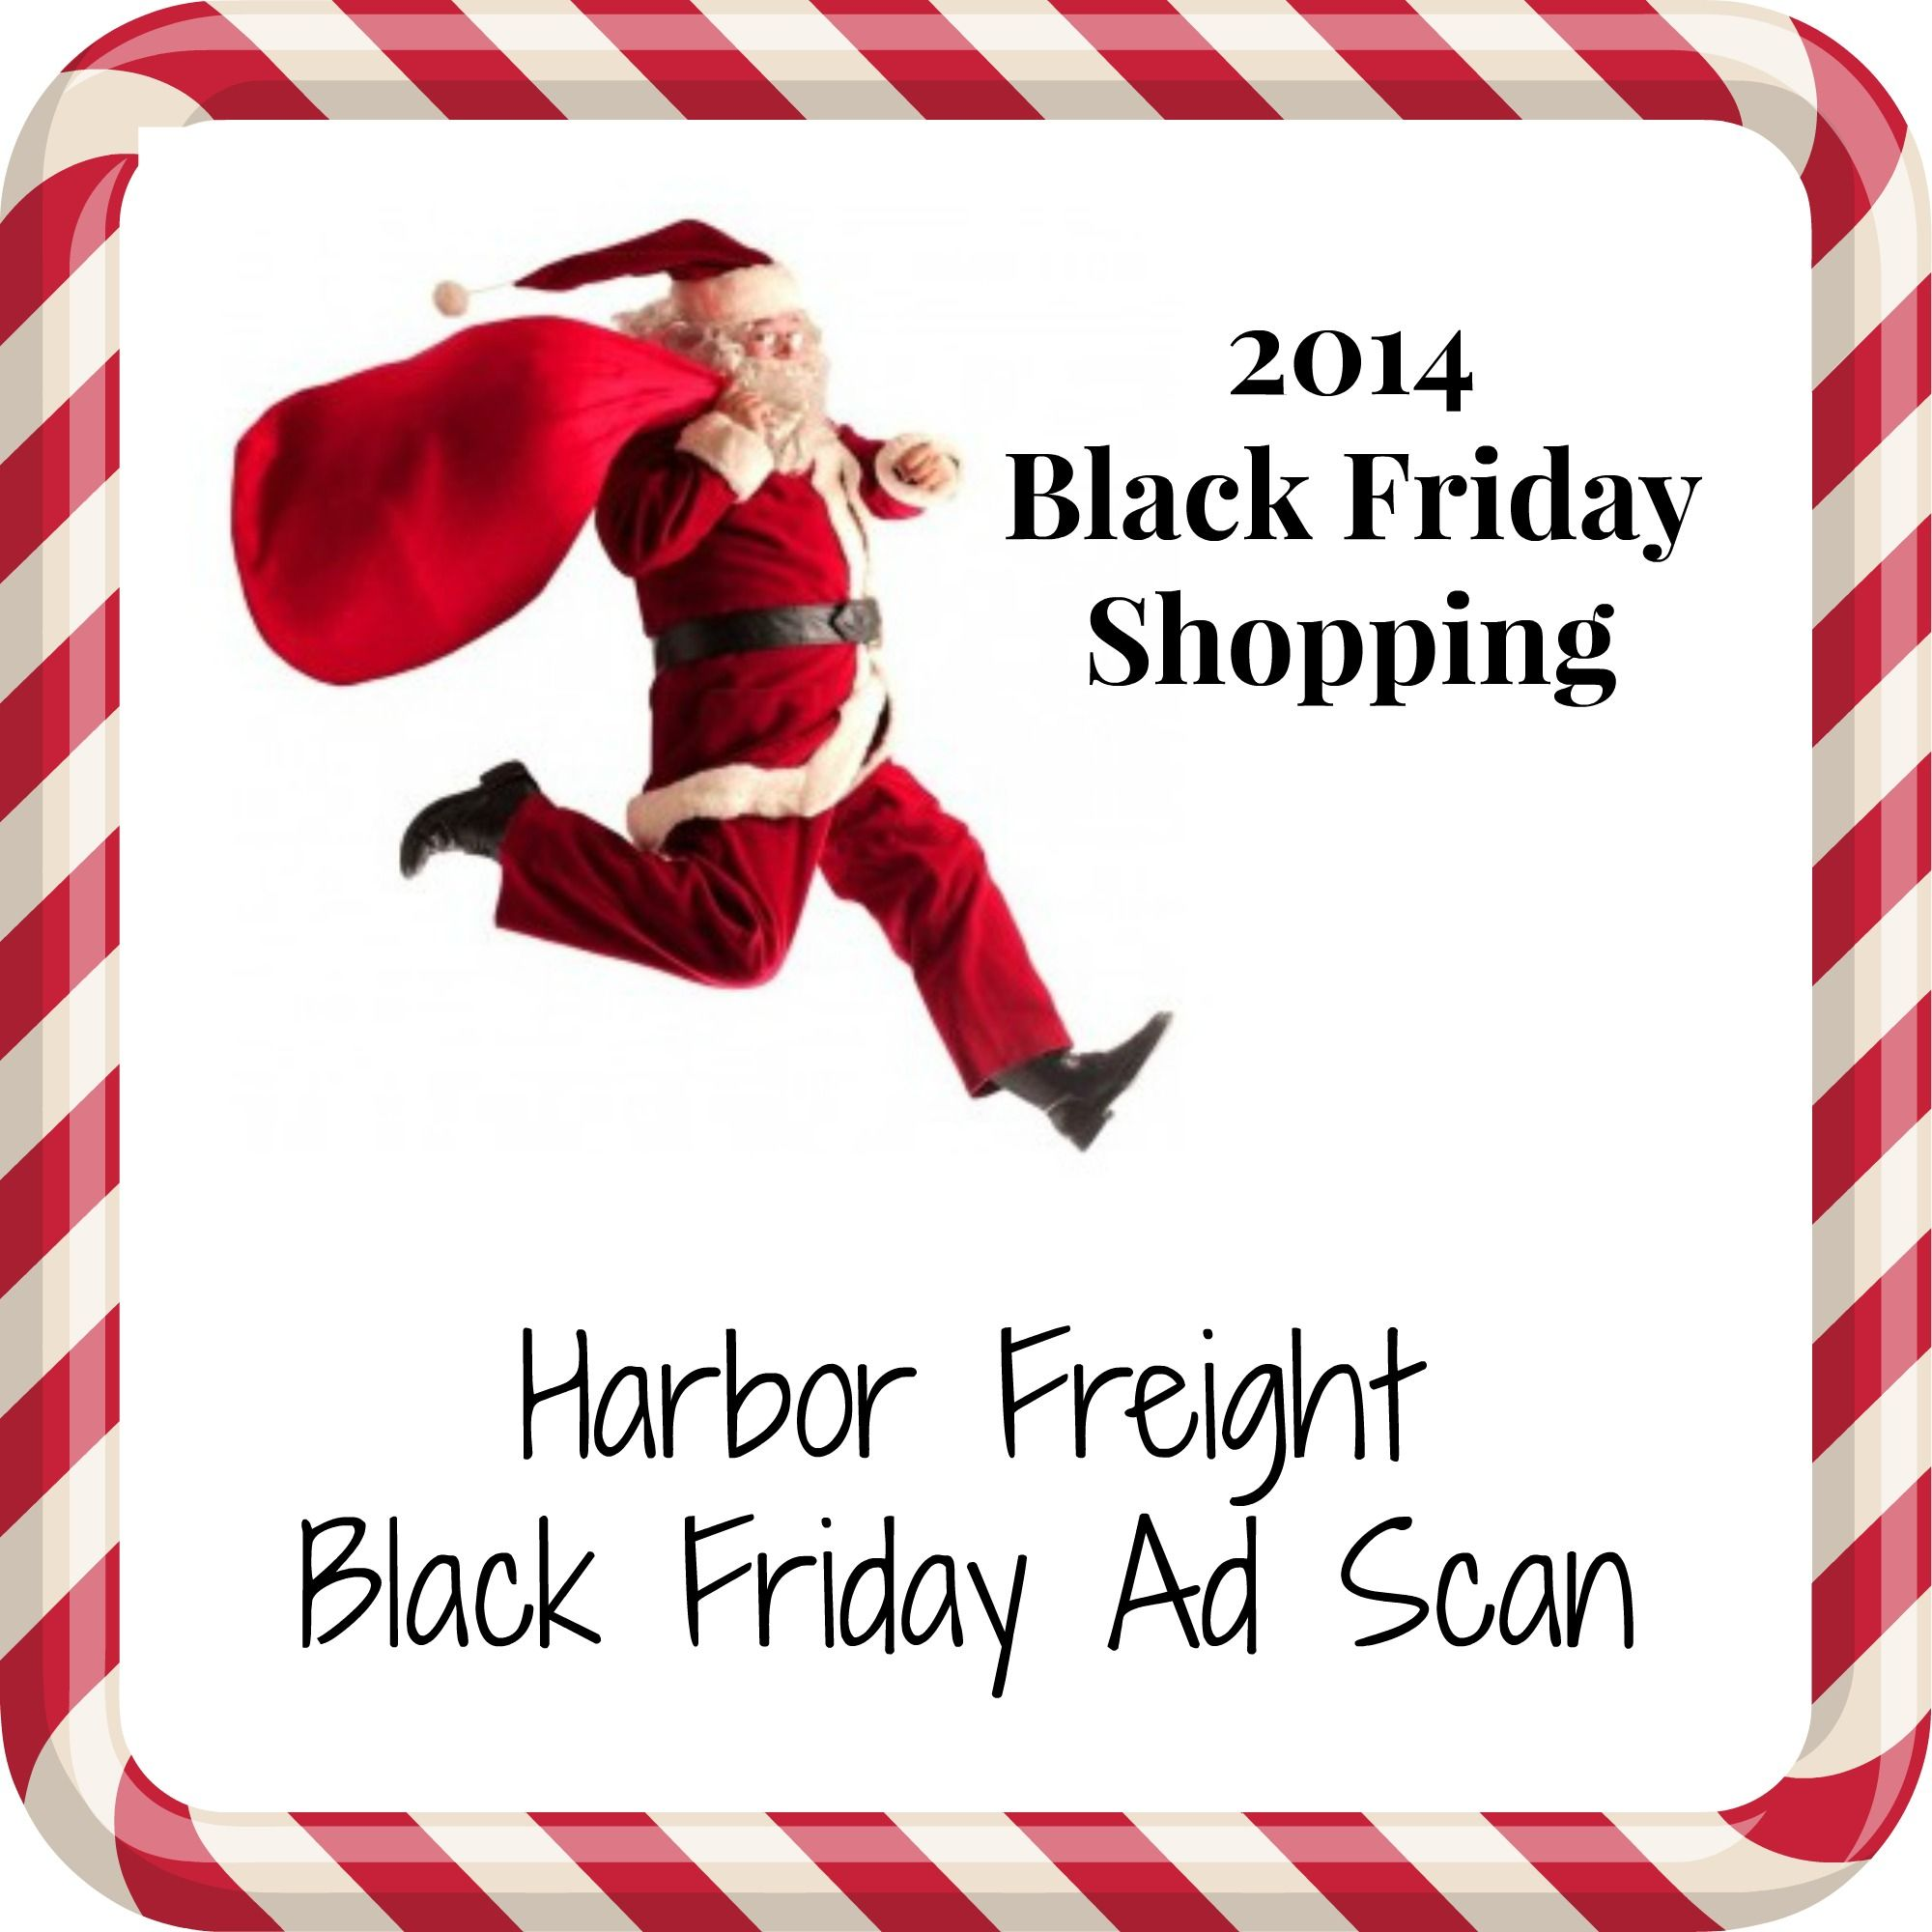 Harbor Freight Black Friday 2014 Ad Scan Black friday